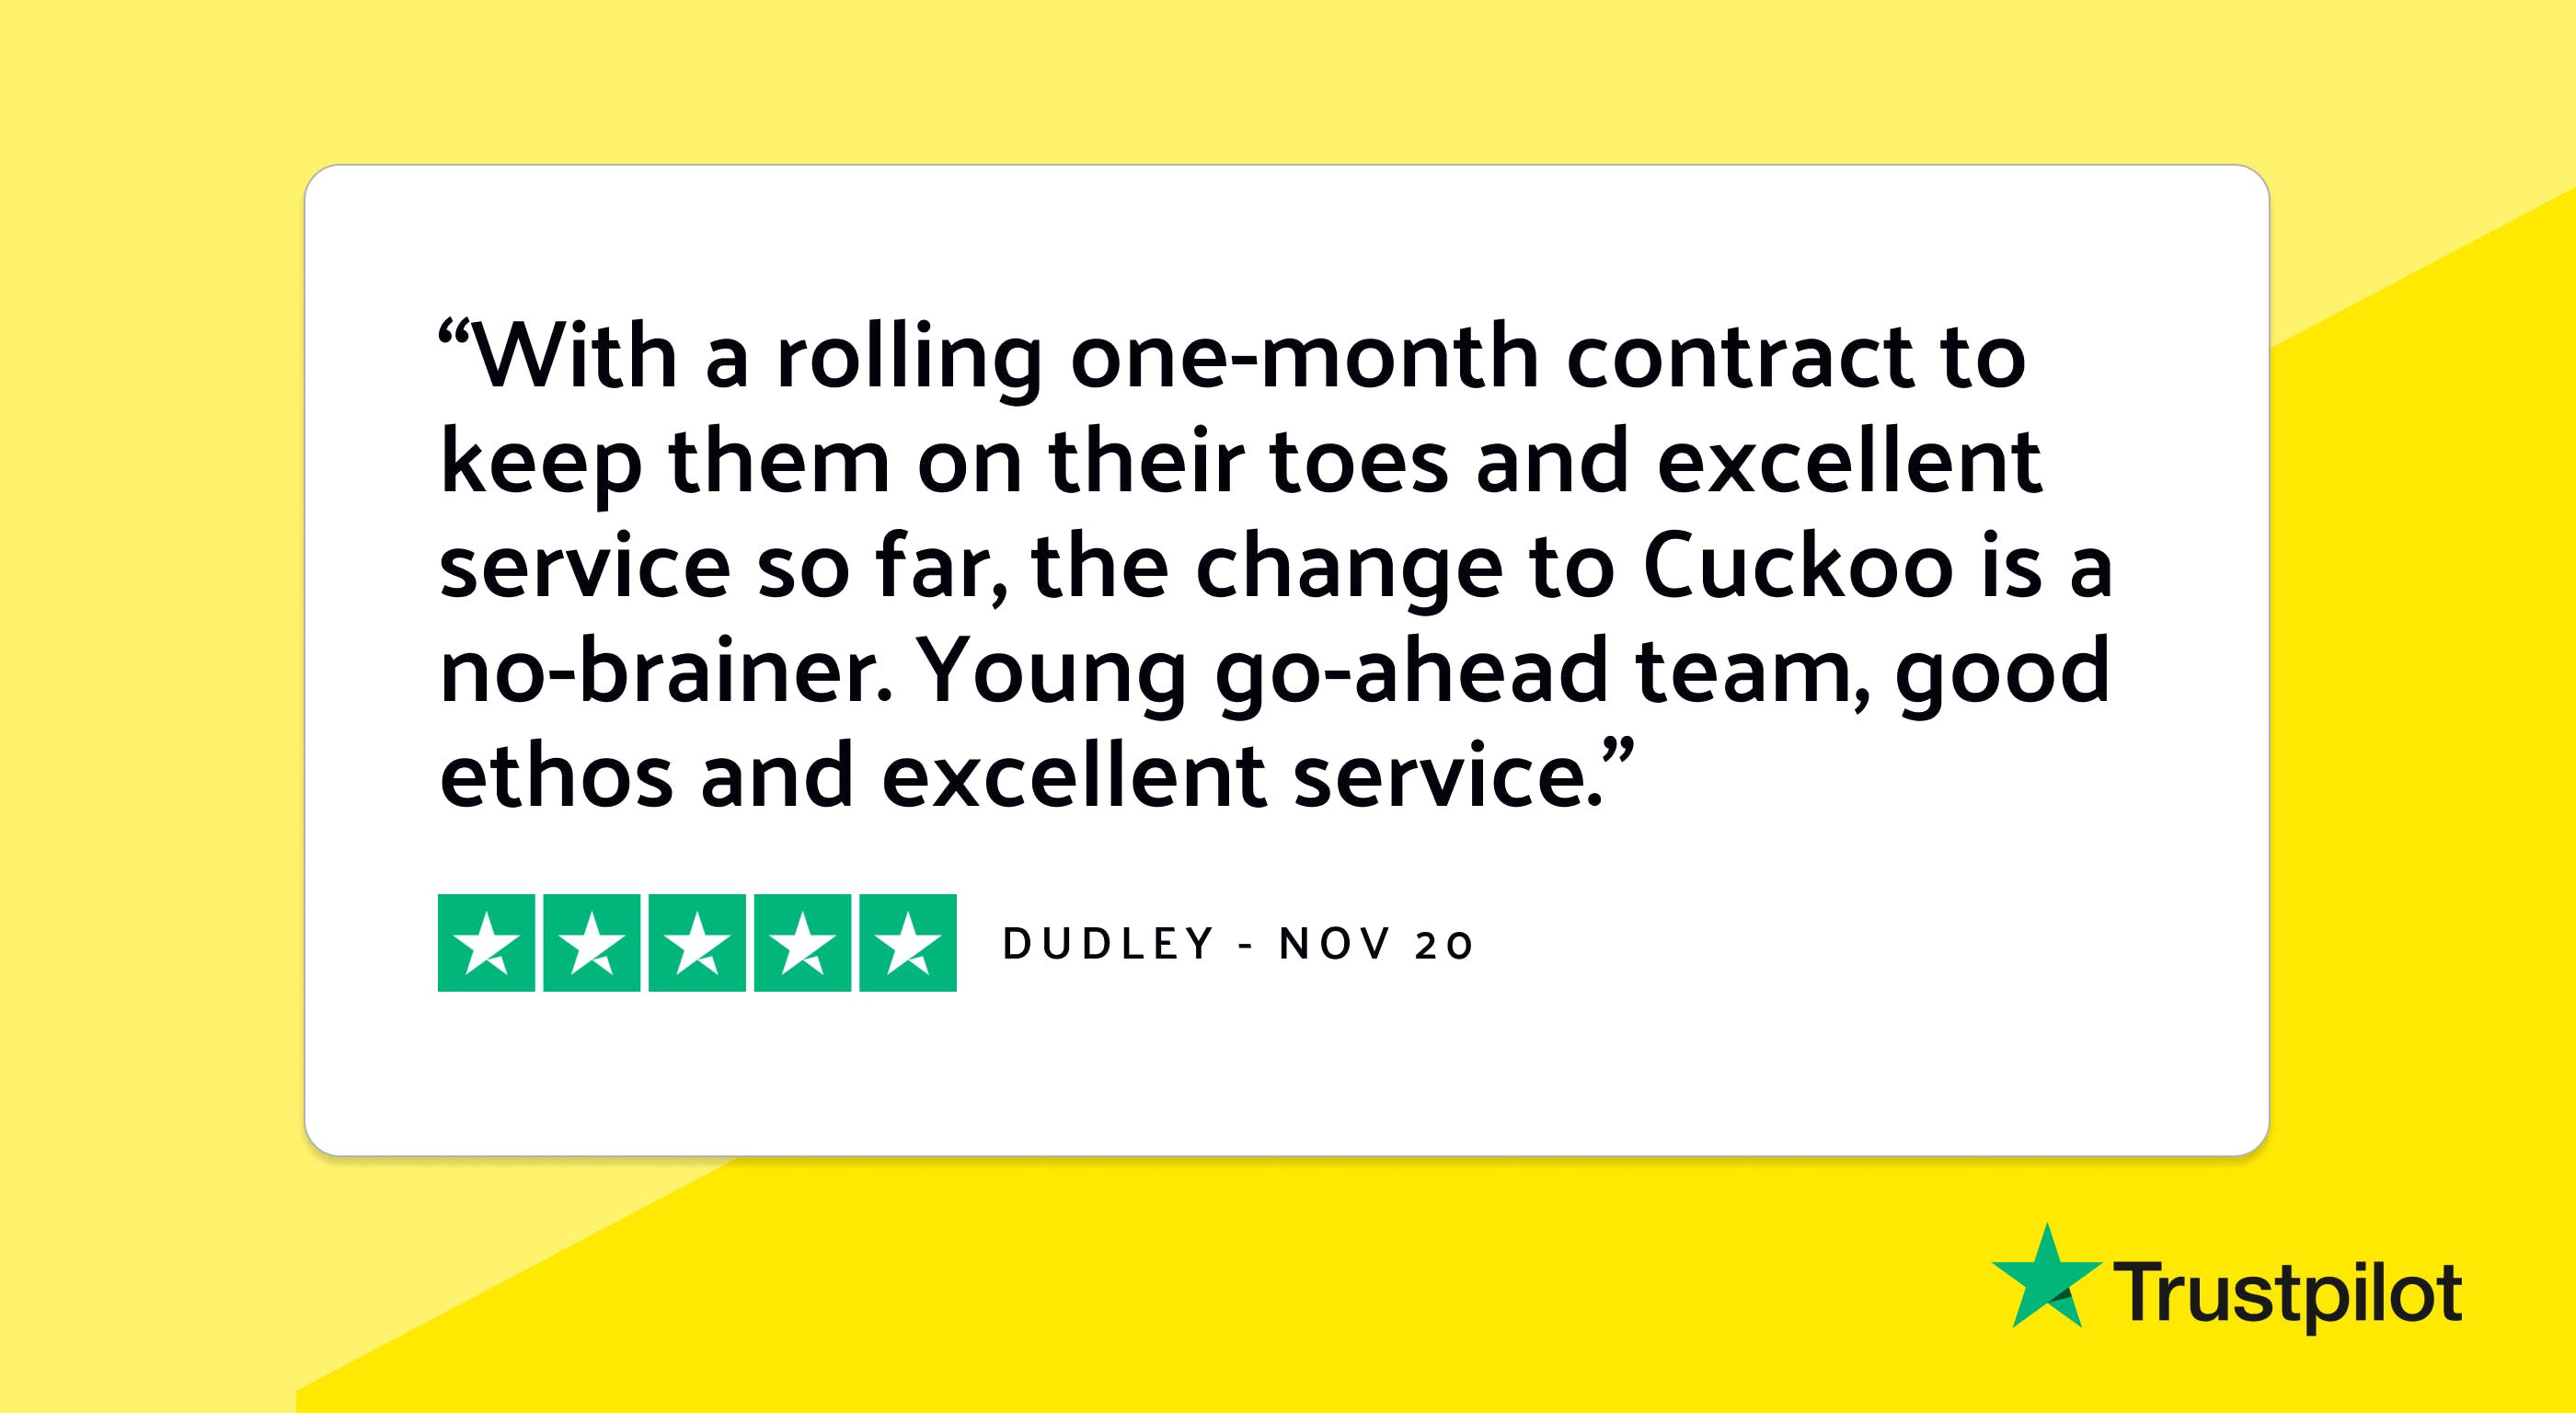 """Trustpilot review: """"With a rolling one-month contract to keep them on their toes and excellent service so far, the change to Cuckoo is a no-brainer. Young go-ahead team, good ethos and excellent service."""""""